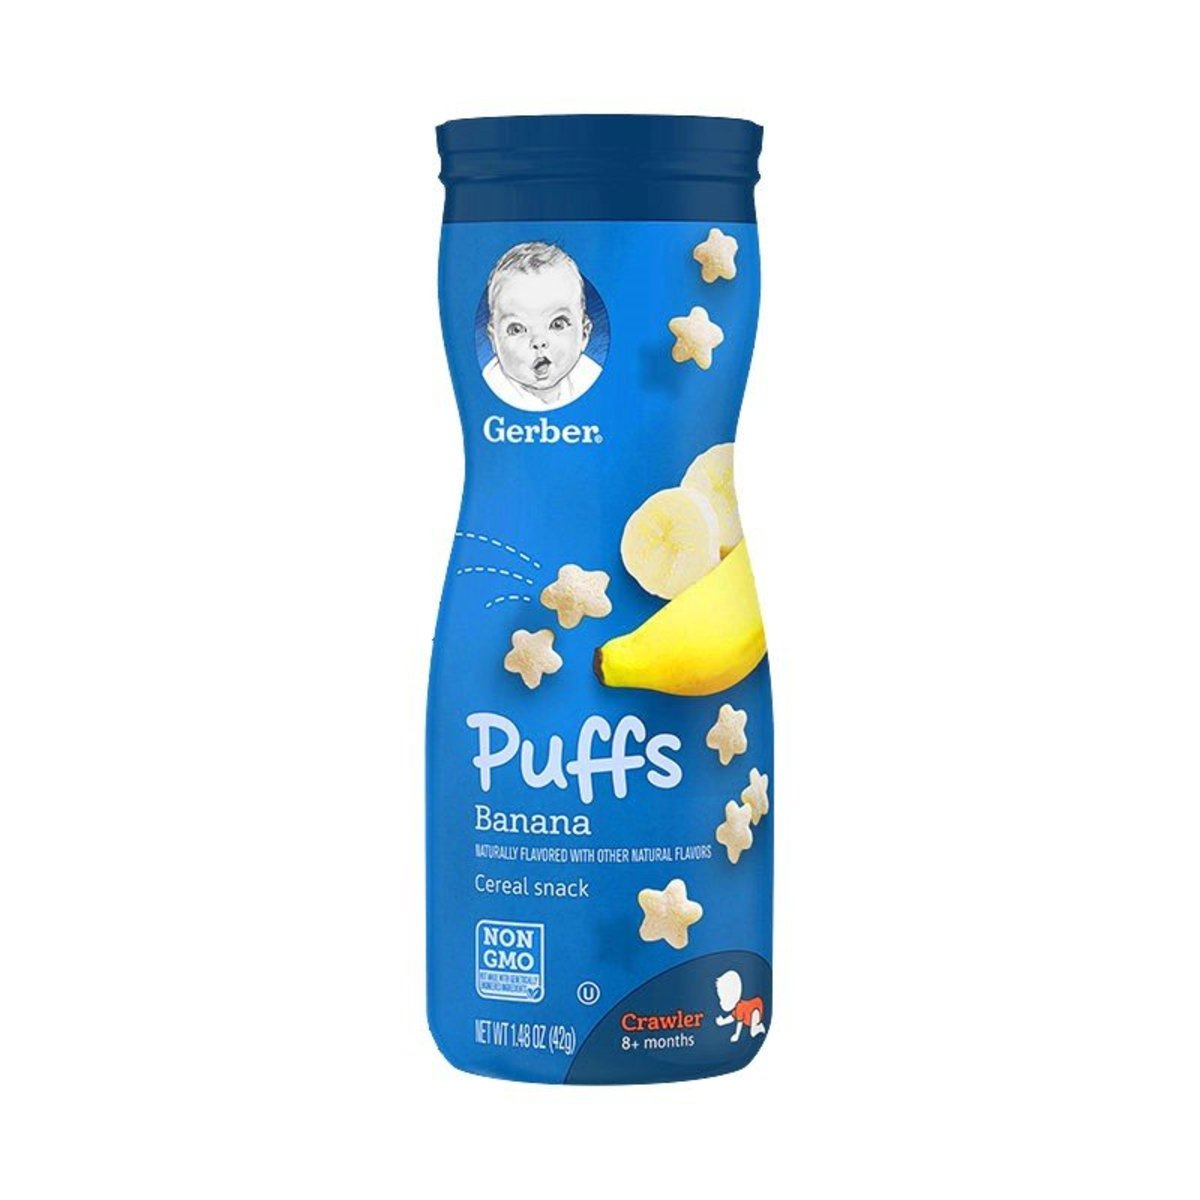 Banana Puffs Cereal Snack 42g(8+months)(parallel import)